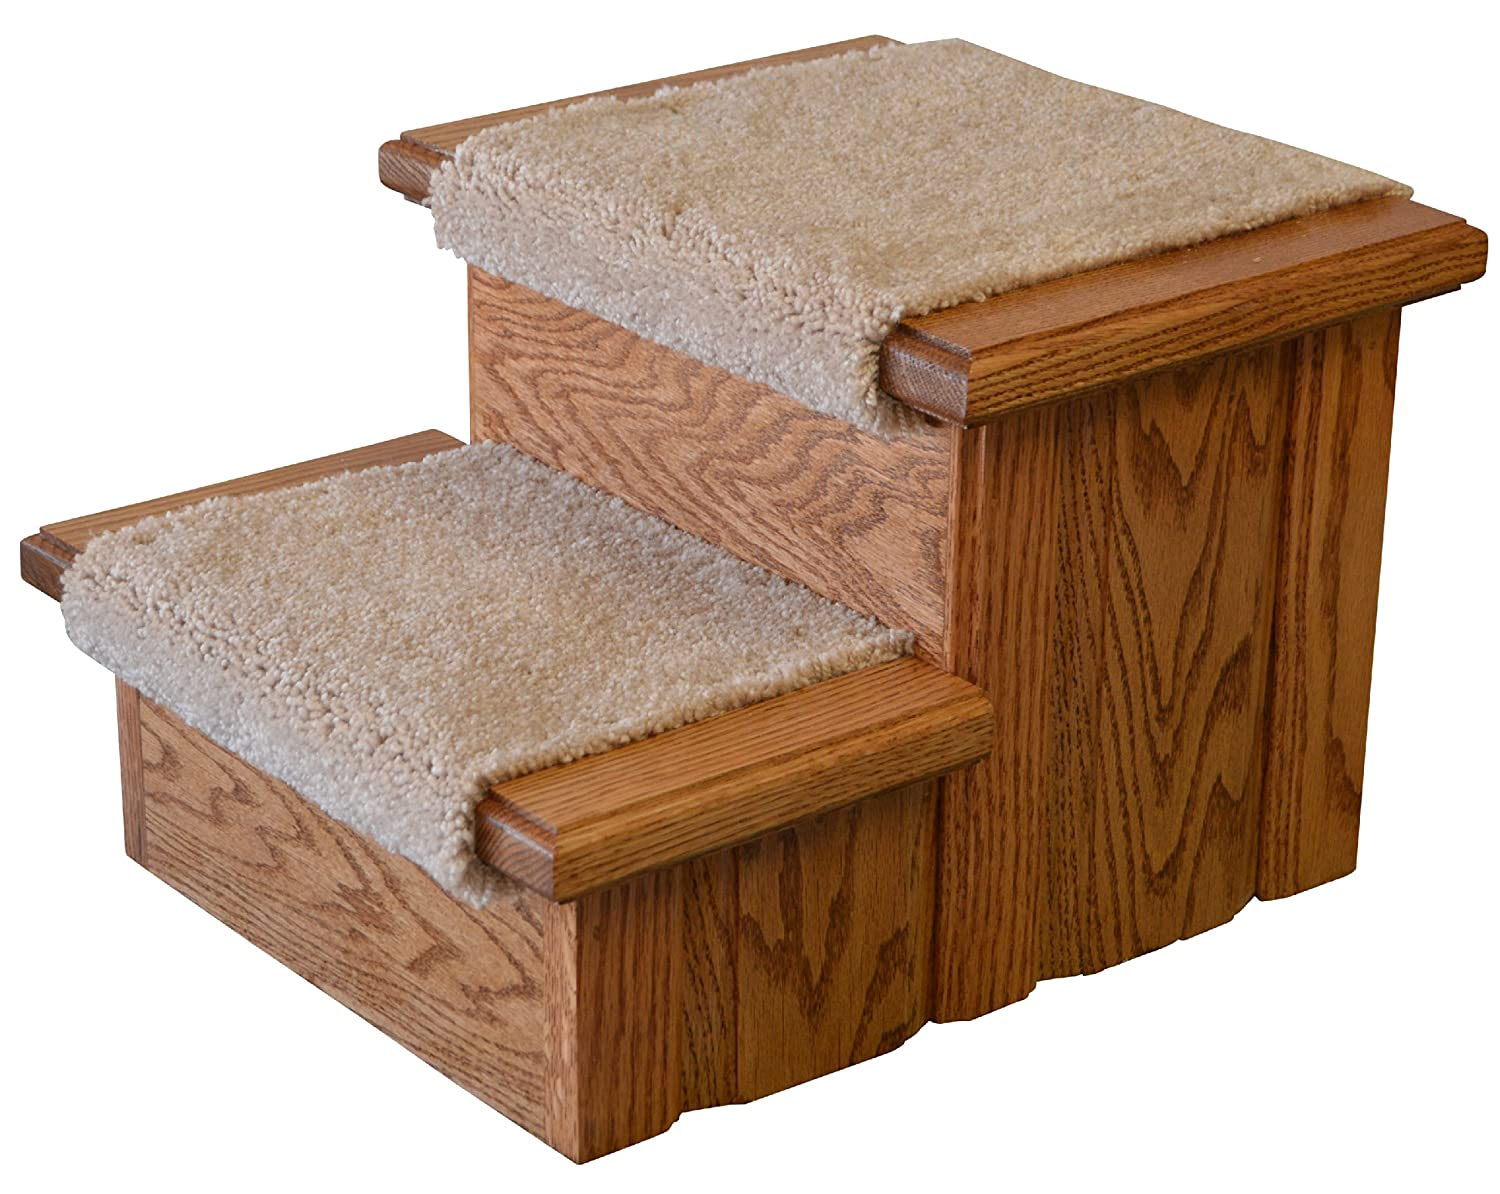 Early American Finished Solid Oak Step Stool With Carpeted Tread 11 ½ Tall Premier Pet Steps SS2cOEA